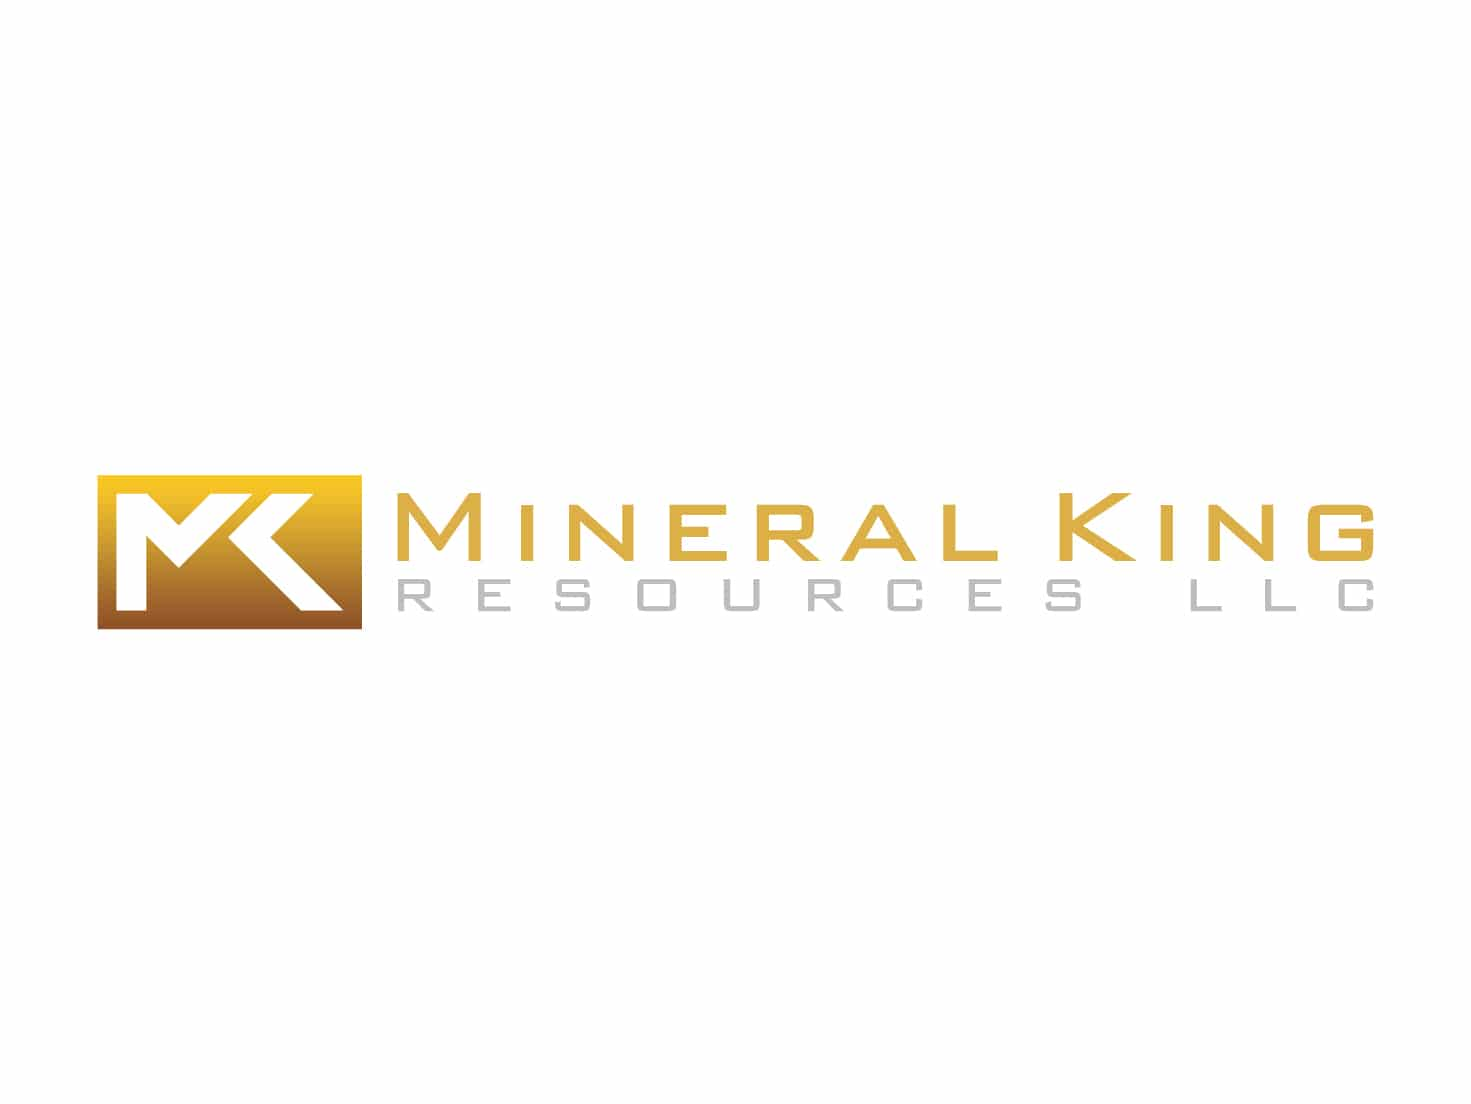 Mineral King Resources